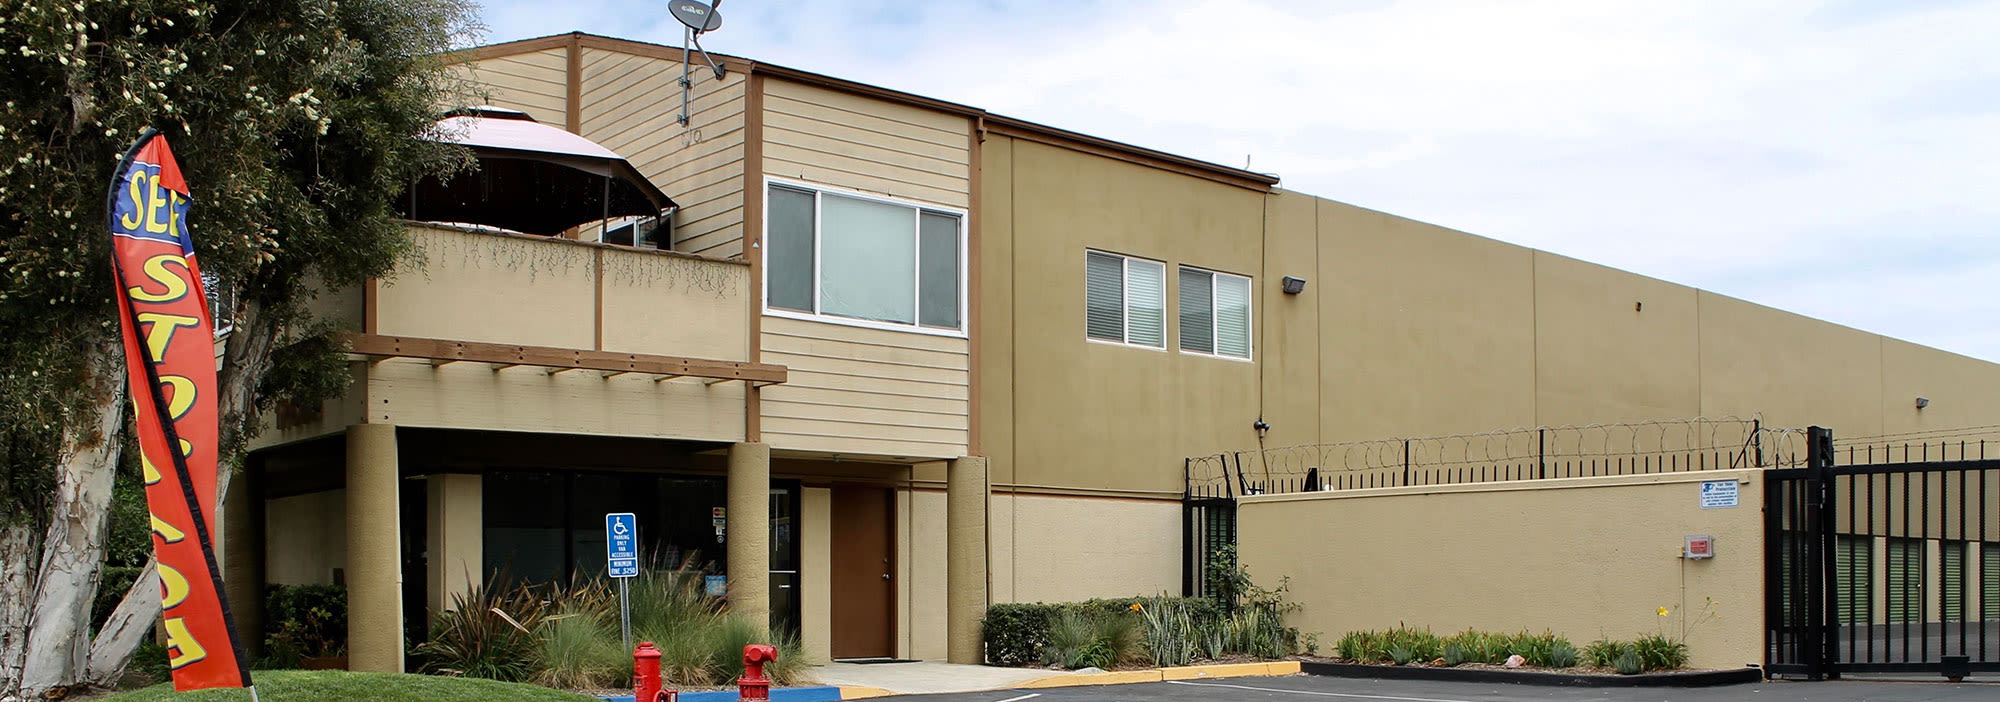 Self Storage In Huntington Beach Ca